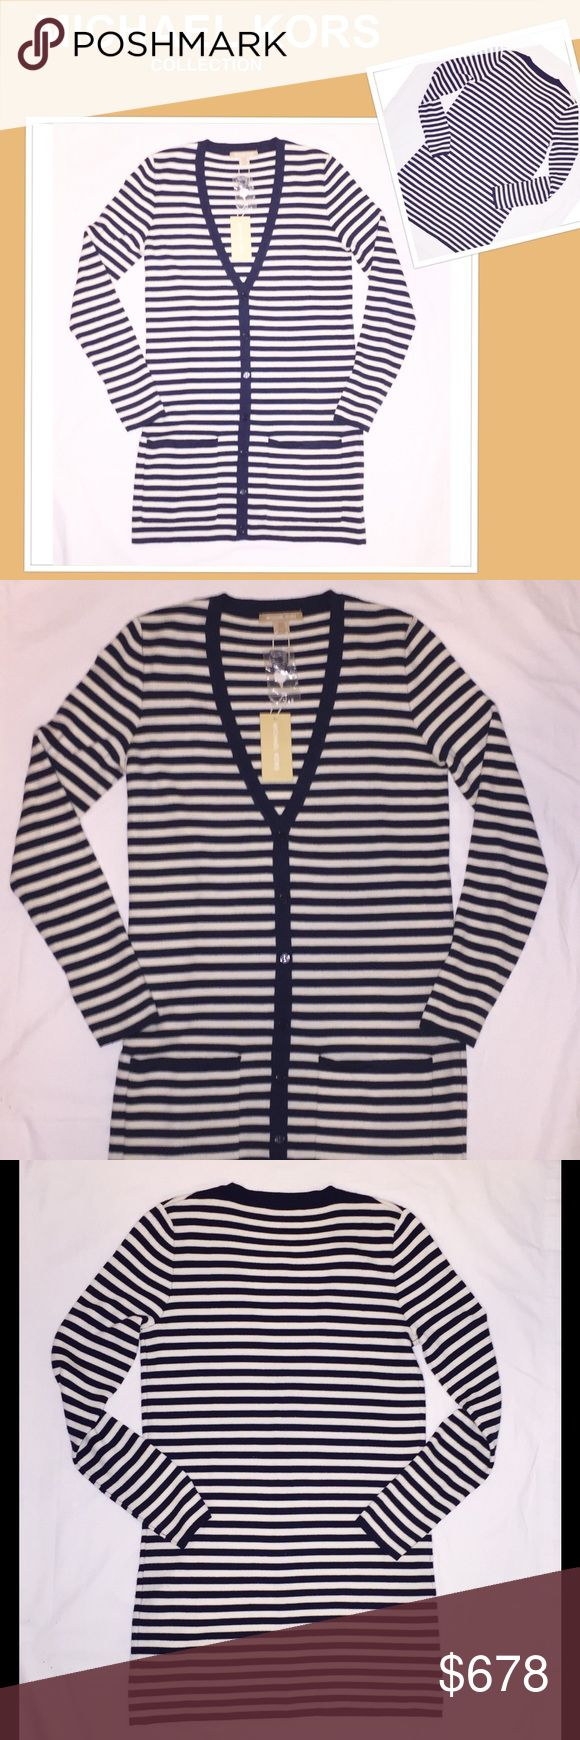 Michael Kors Collection Cashmere Cardigan This luxurious midnight/white striped Michael Kors Collection v-neck cashmere cardigan is incredibly soft and warm. Listed size XS, but can fit a size 4 comfortably. Tag and extra thread included. Perfect for so many occasions...wear it on a cold plane or office or on a chilly night to mention a few. Michael Kors Collection Sweaters Cardigans